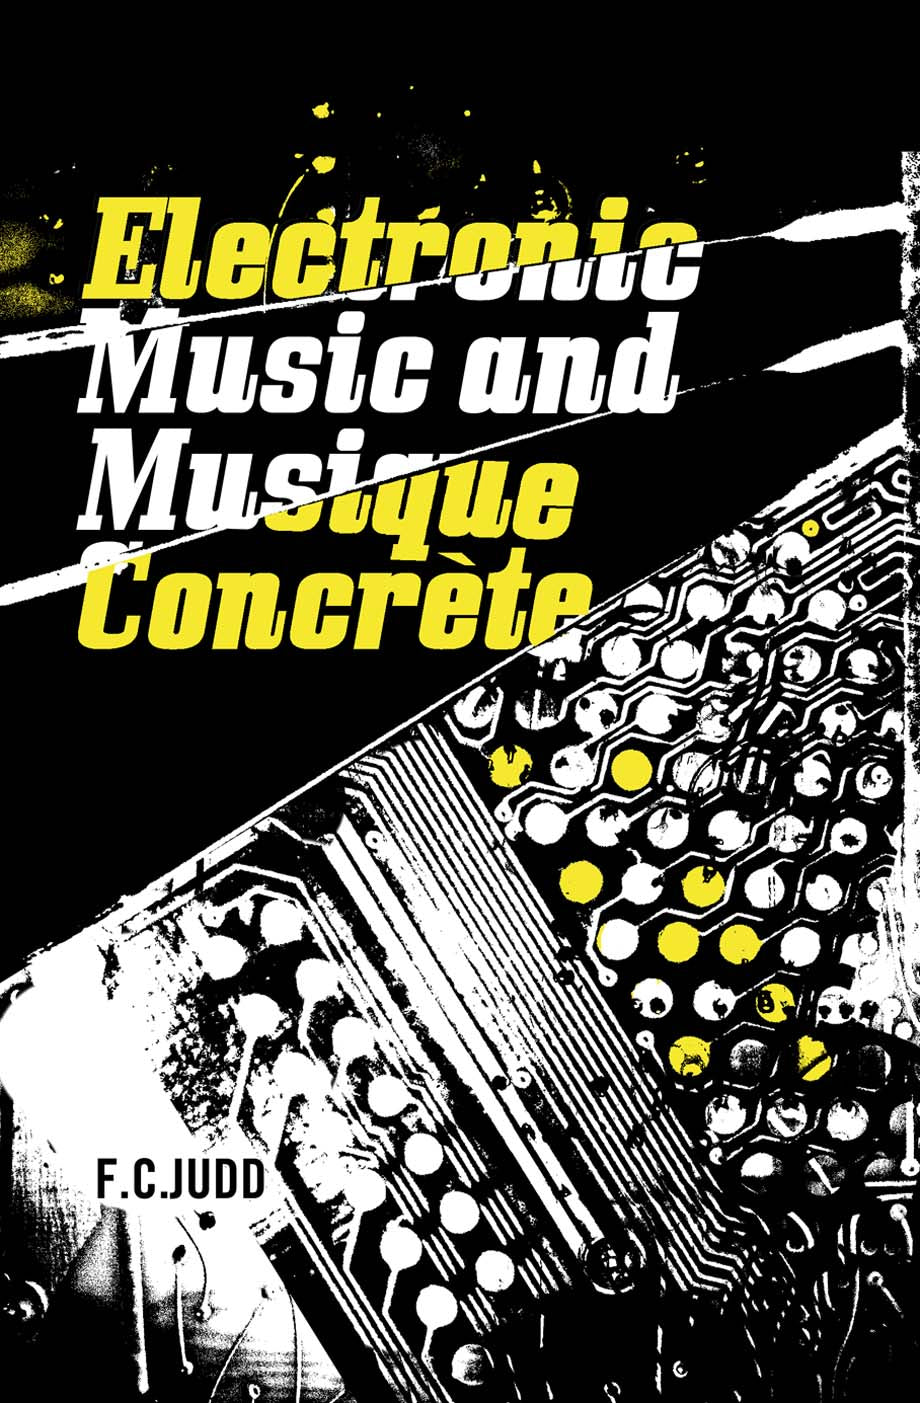 Electronic Music and Musique Concrete by FC Judd, Foruli Classics, ISBN 9781905792511, front cover